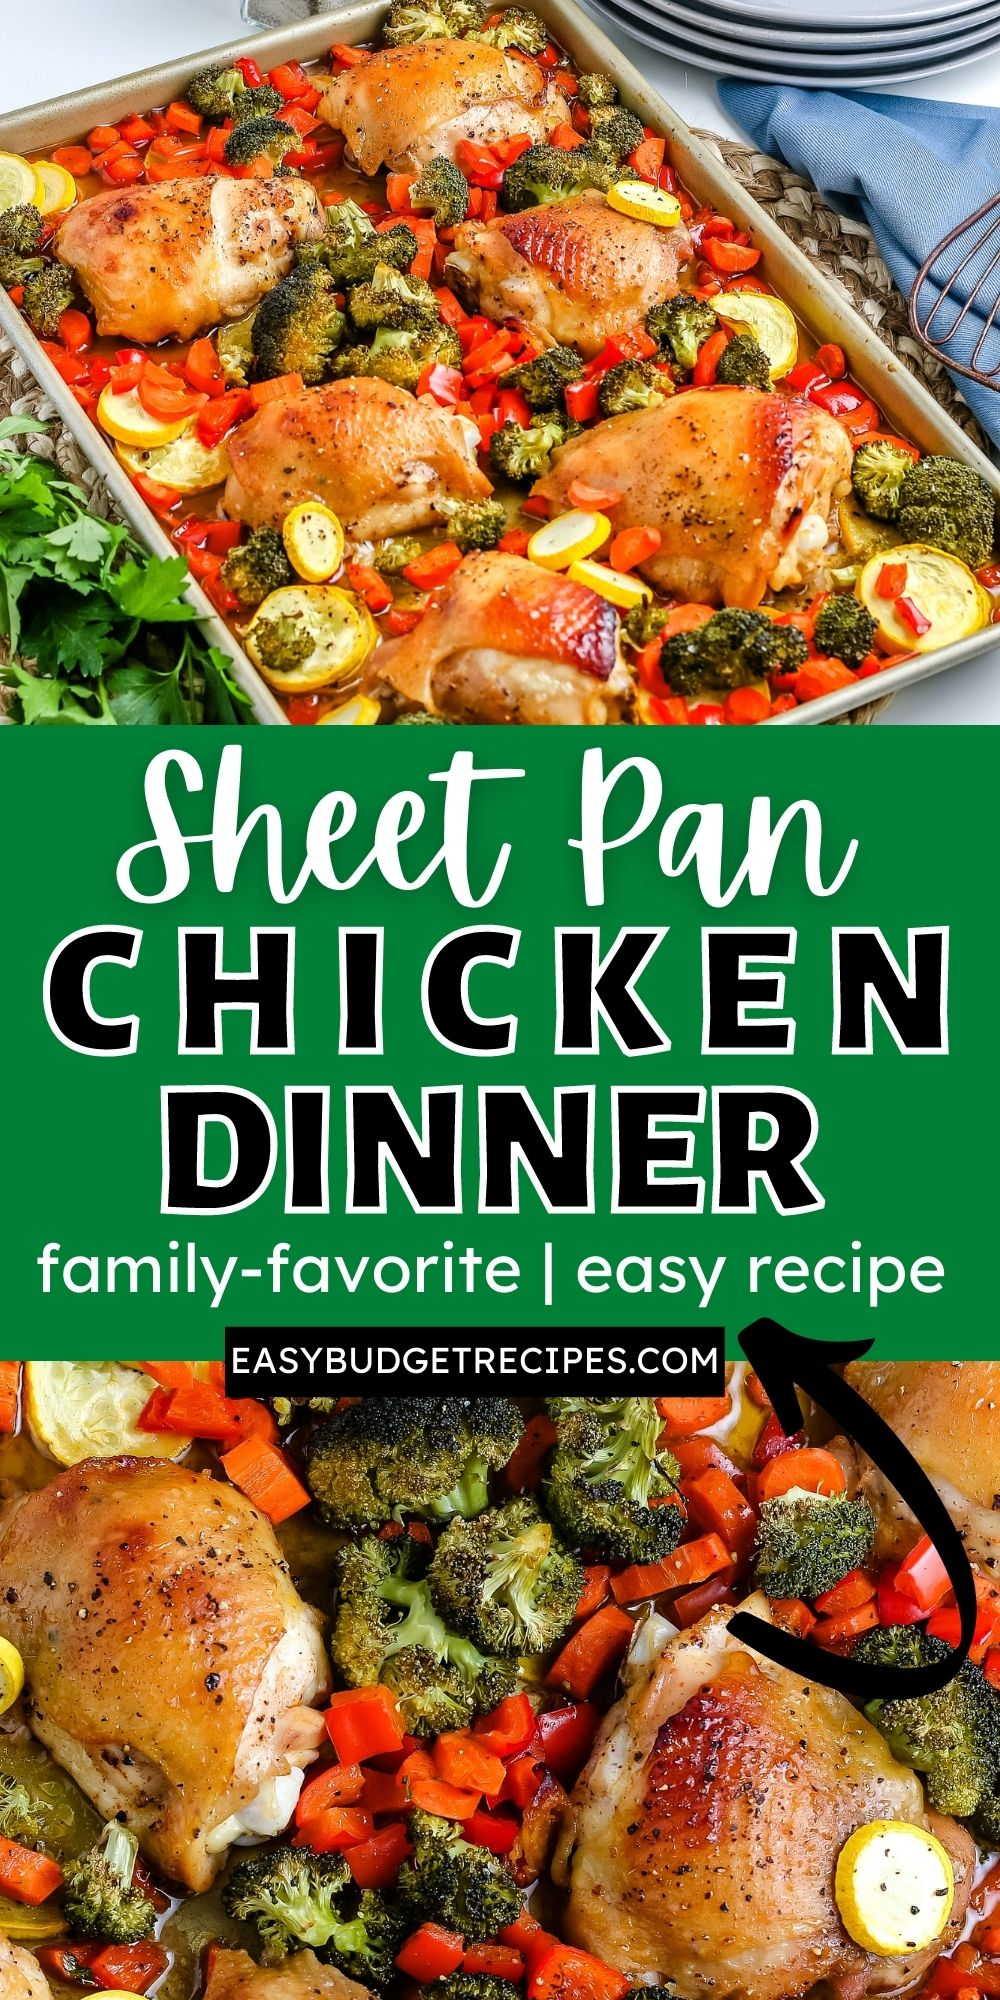 This Sheet Pan Chicken Dinner is made with chicken thighs, broccoli, squash, bell pepper, carrots, and a delicious marinade. It's easy to make, and all made on a sheet pan. via @easybudgetrecipes